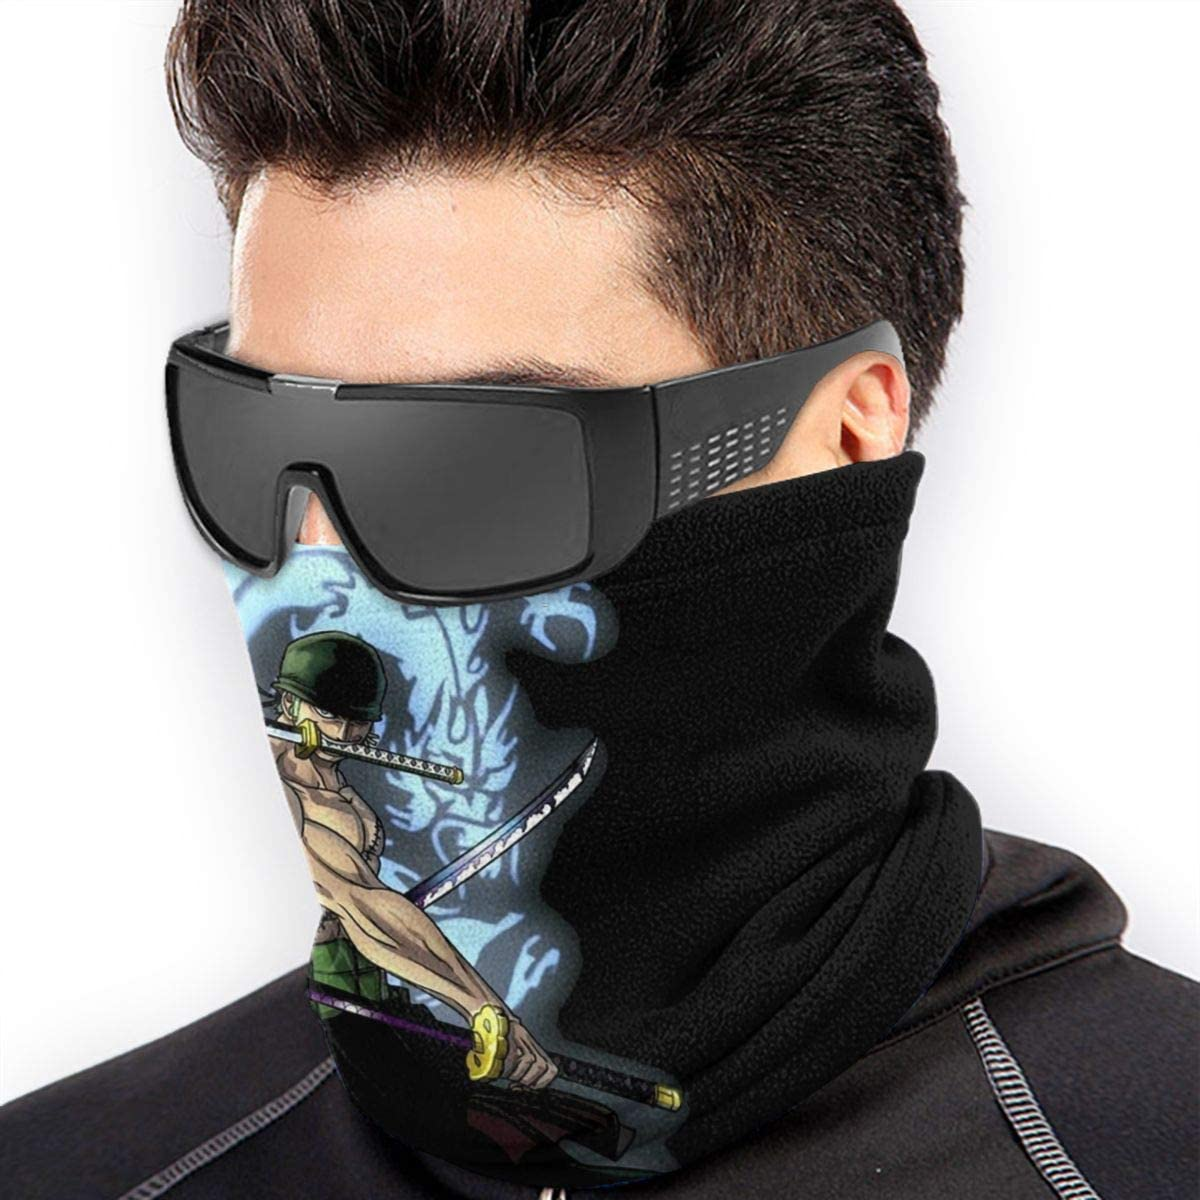 Zoro Neck Gaiter Face Scarf Face Mask Cooling Lightweight Breathable Sun Protection for Fishing Hiking Running Cycling Black